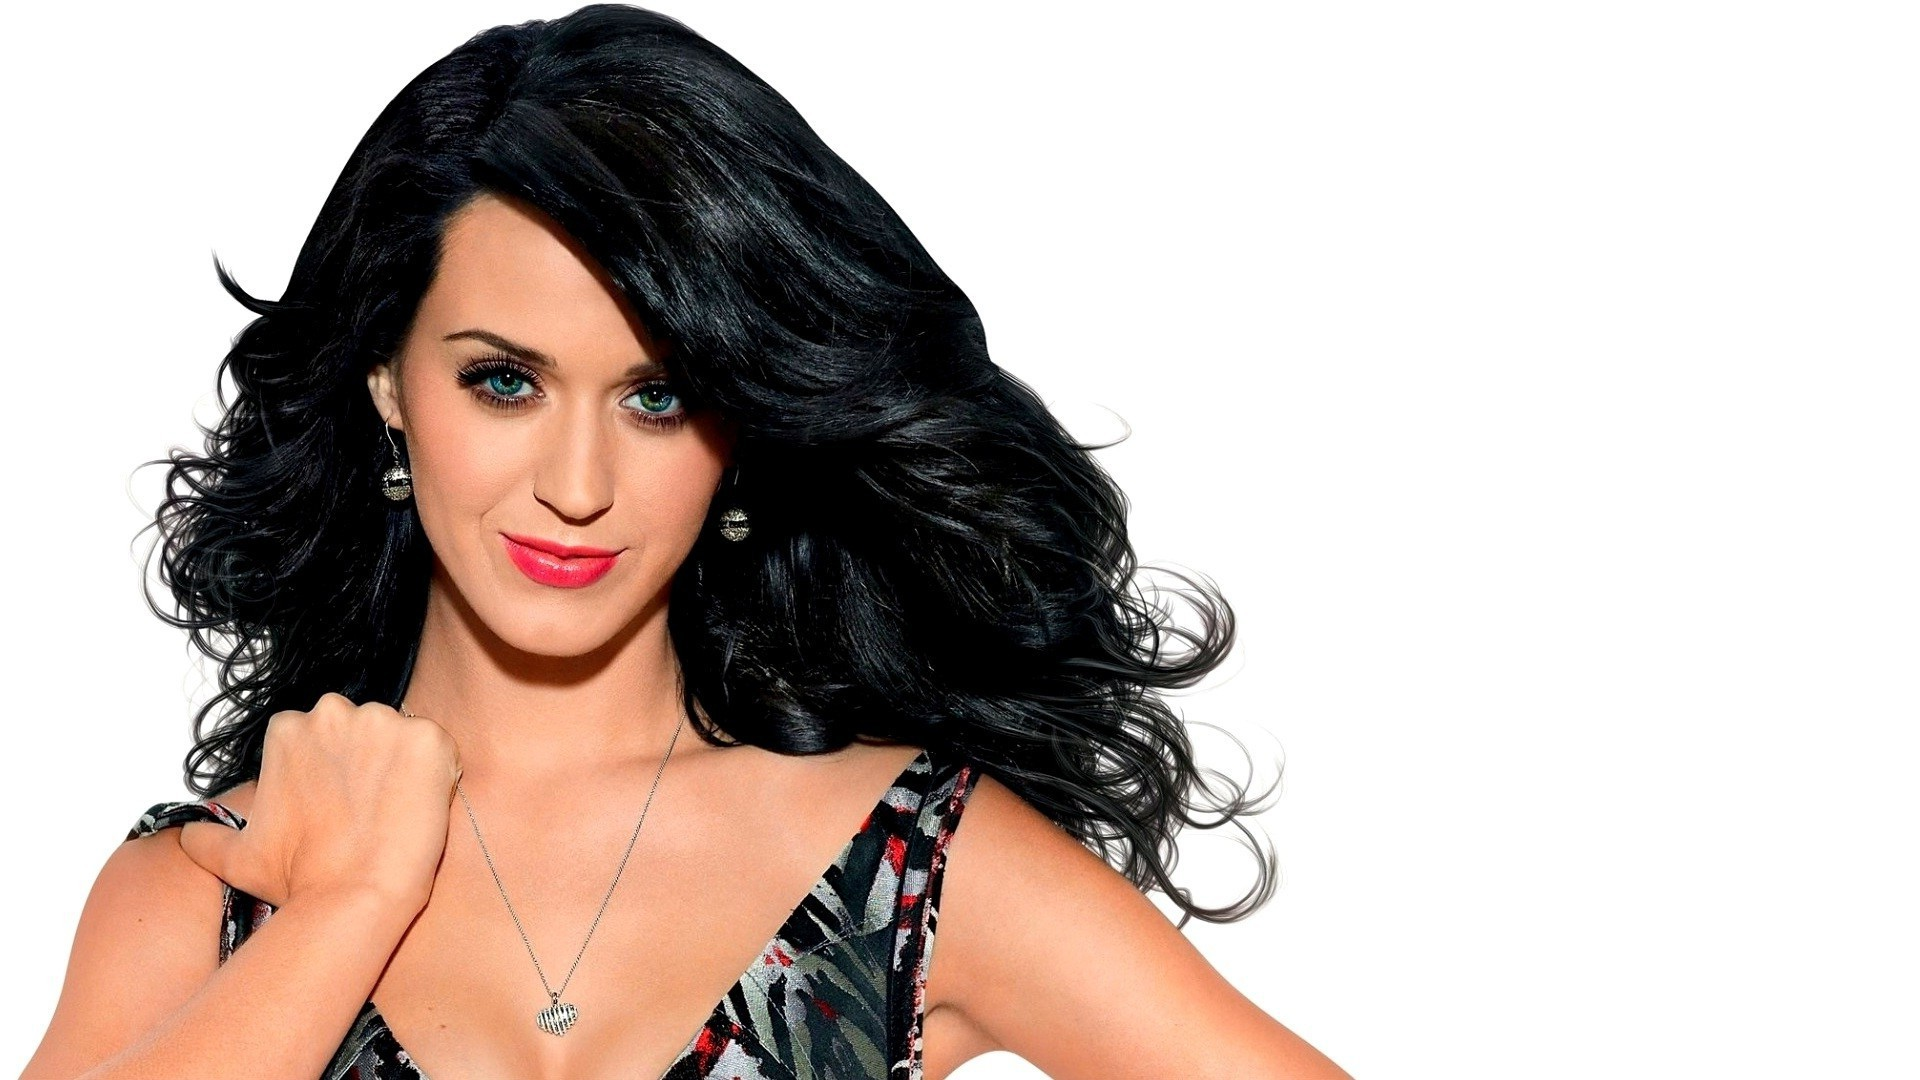 Katy Perry High Quality Wallpapers